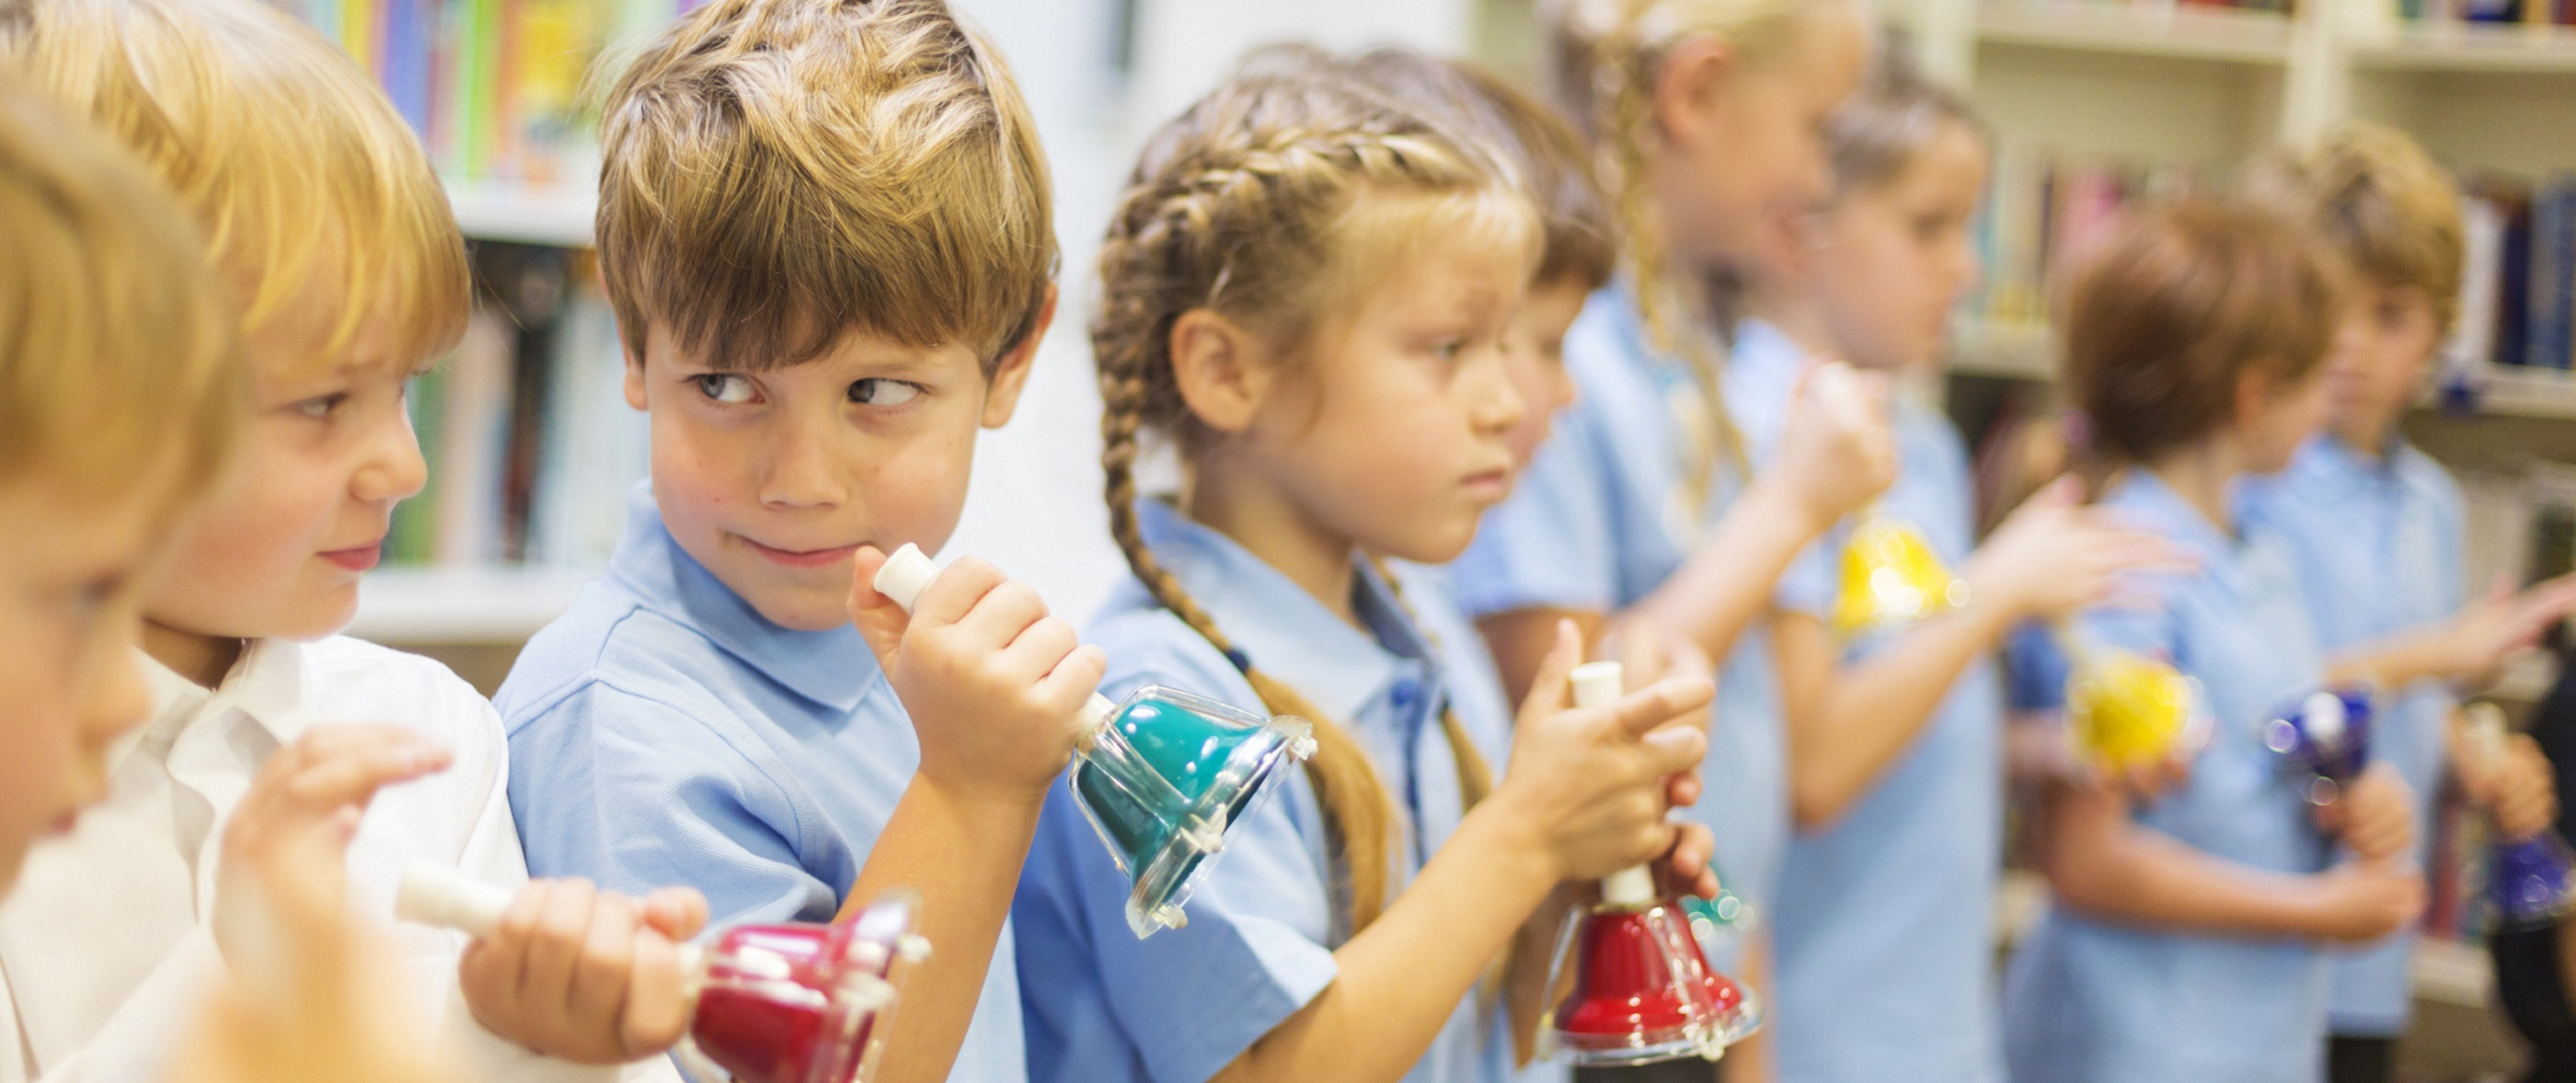 School children are lined up ready to play hand bells